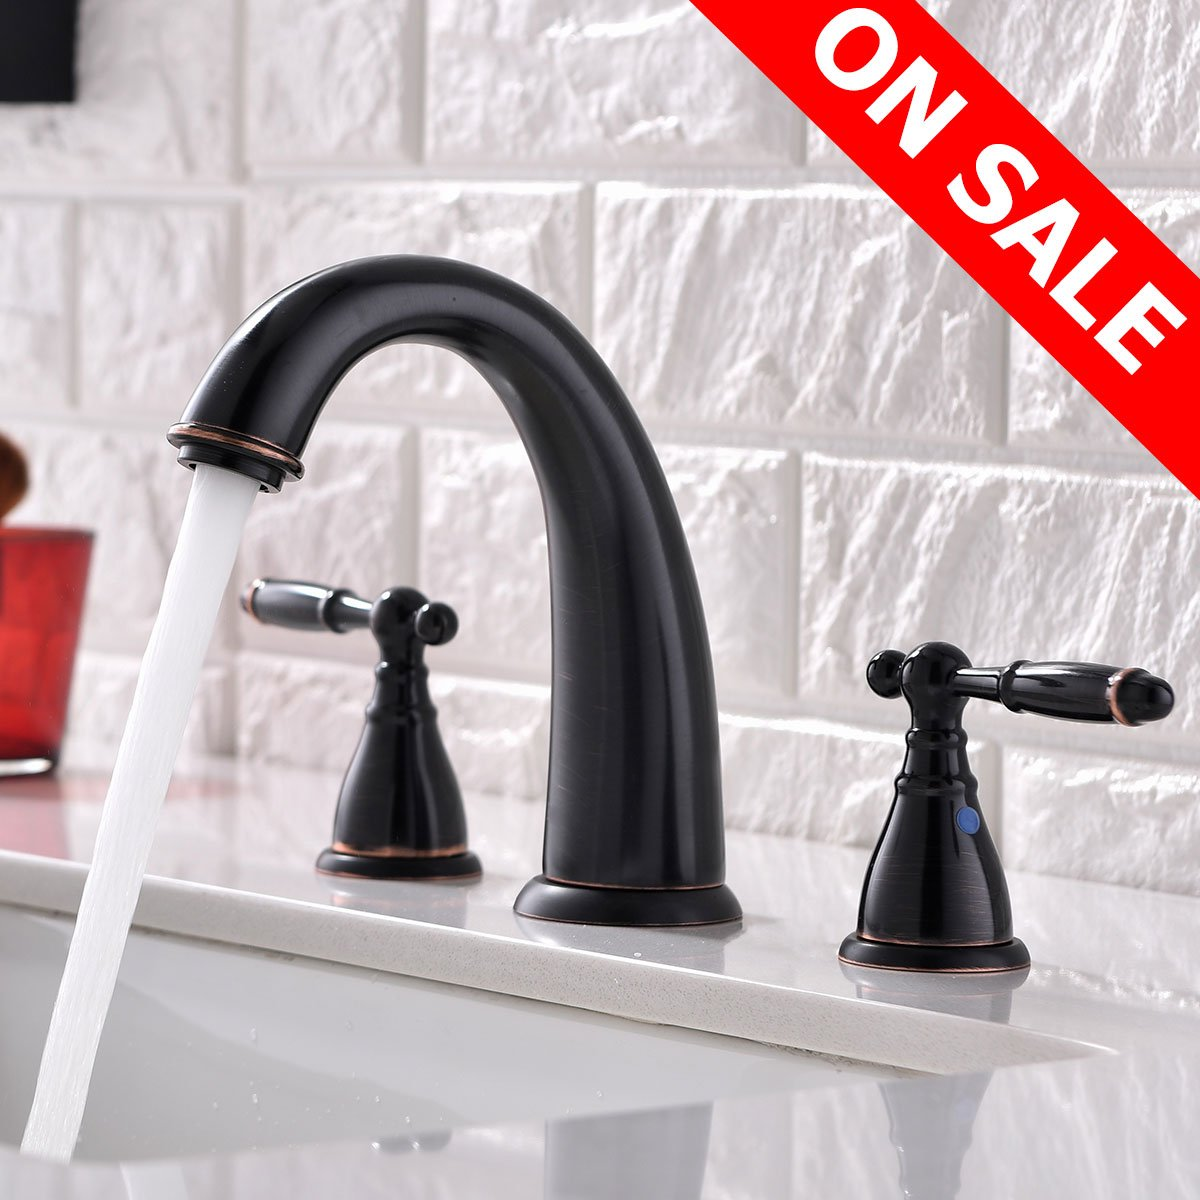 KINGO HOME Antique Durable Two Handles Three Holes Oil Rubbed Bronze Widespread Bathroom Sink Faucet, Bathroom Faucet without Sink Drain Stopper by KINGO HOME